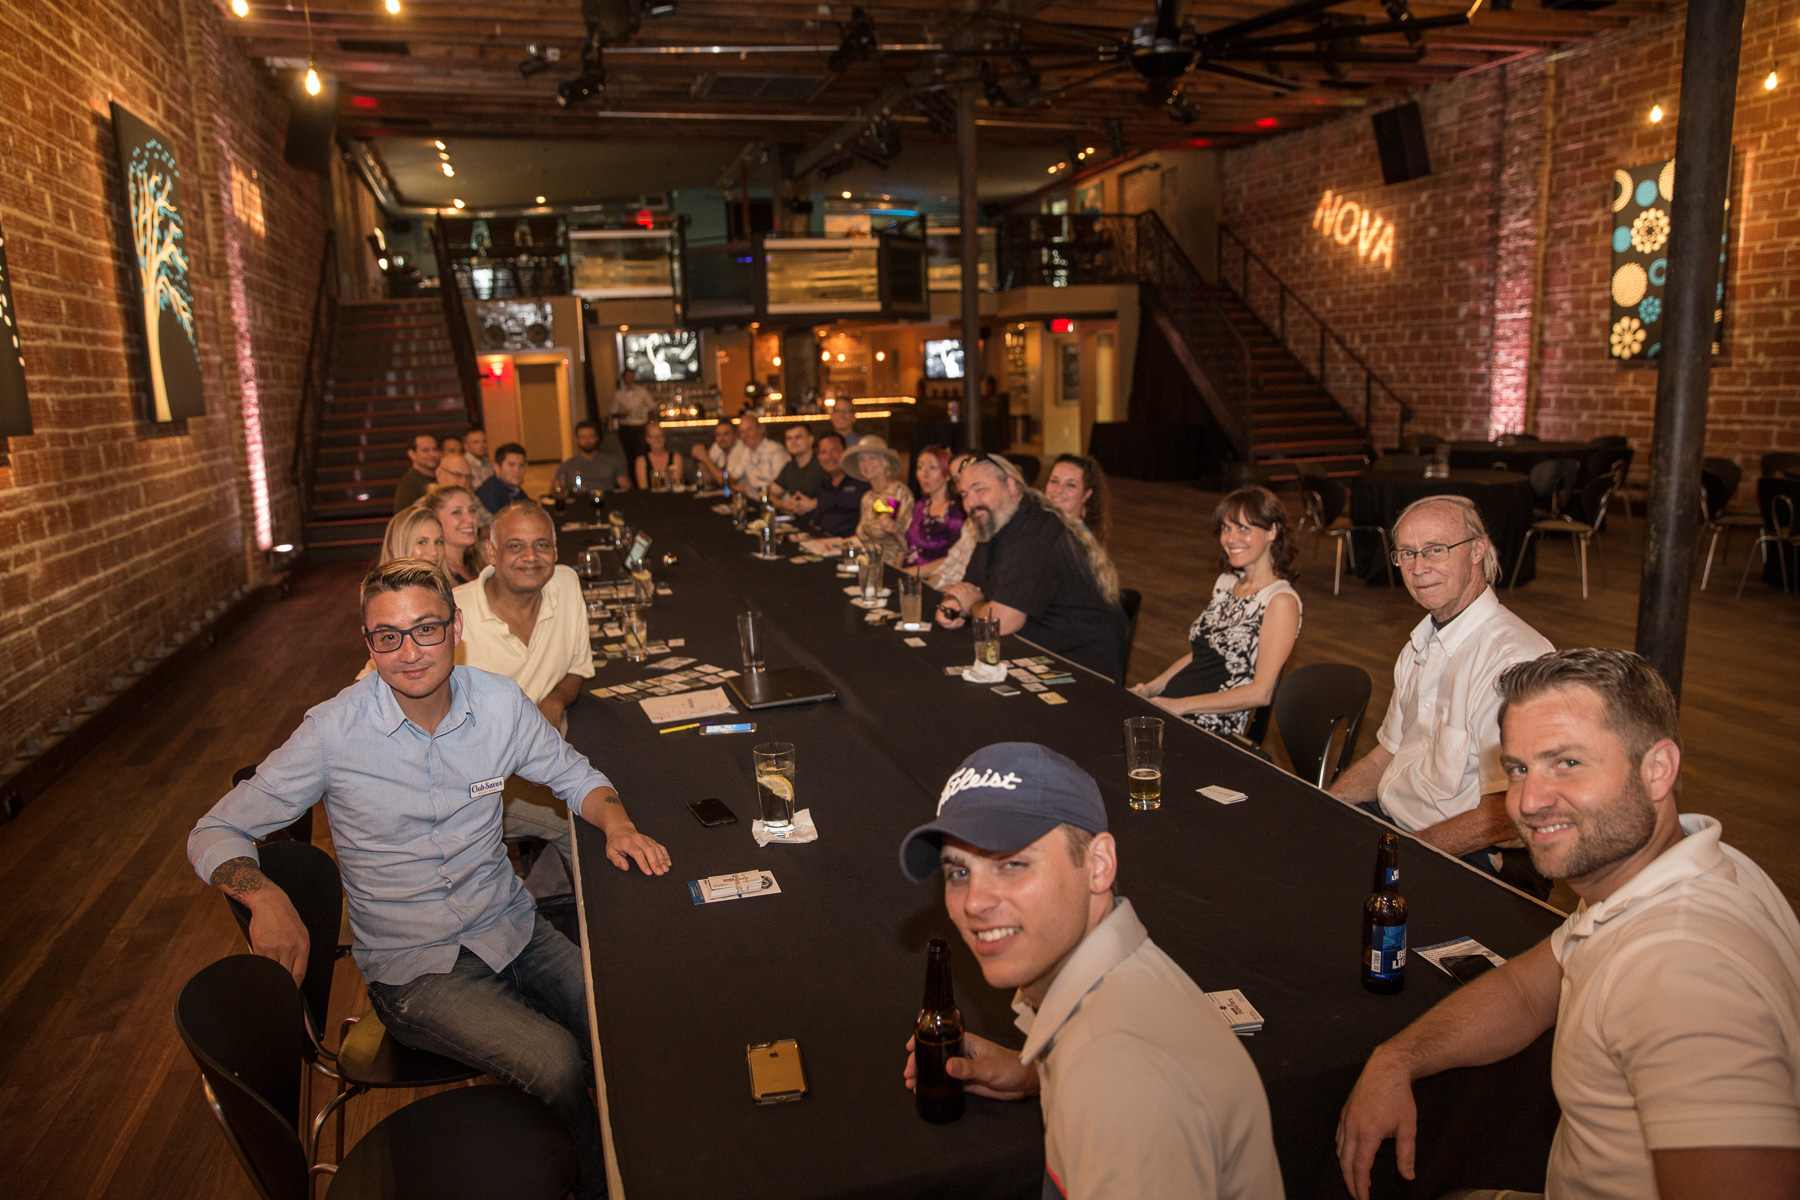 Entrepreneurs make things better for everyone here in DTSP at historic wedding and event venue NOVA 535 for our weekly Entrepreneur Social Club networking meeting and social club.